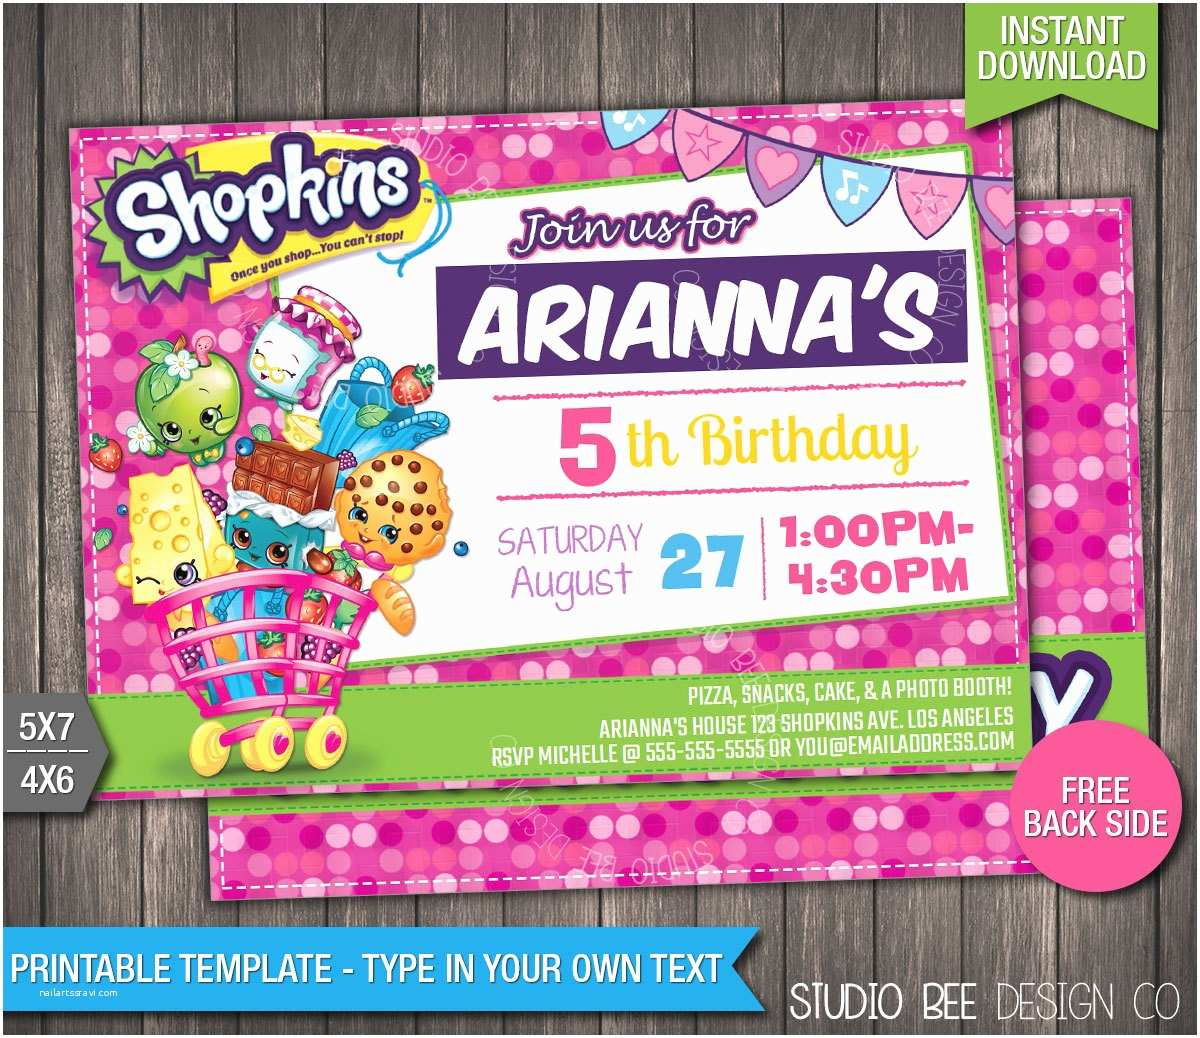 Shopkins Birthday Party Invitations Off Shopkins Birthday Invitation Instant by